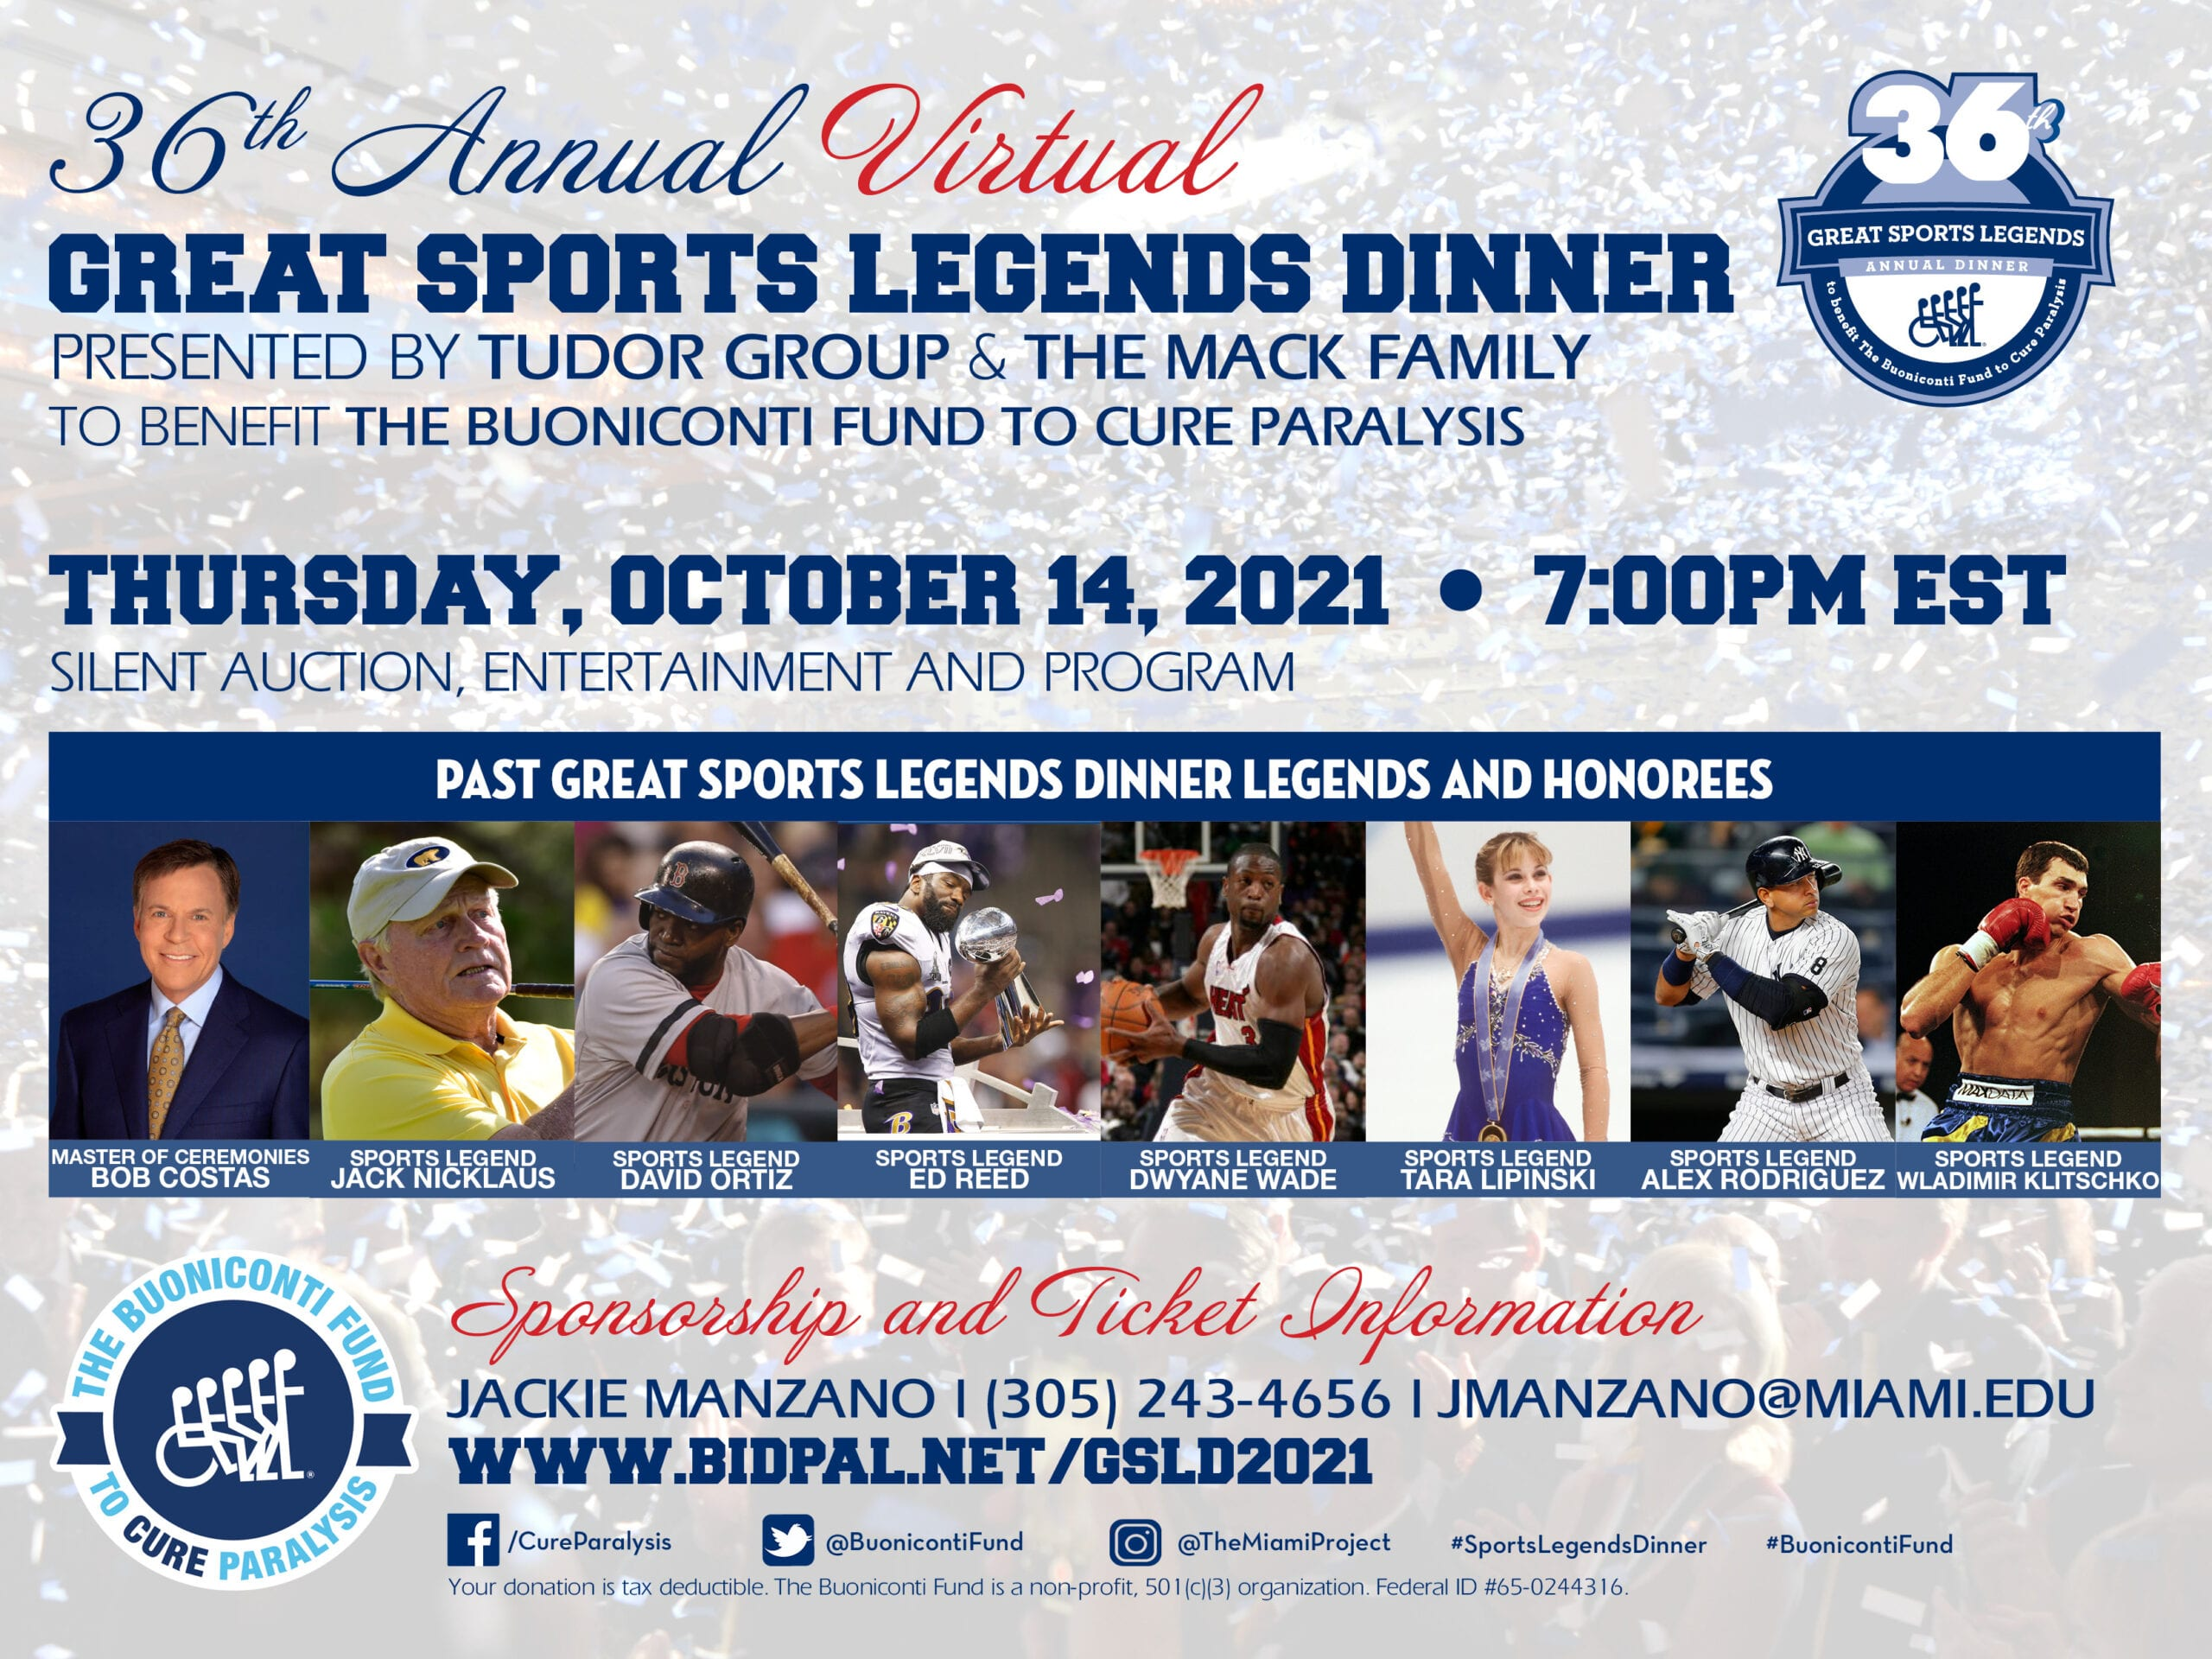 36th Annual Great Sports Legends Dinner Save the Date